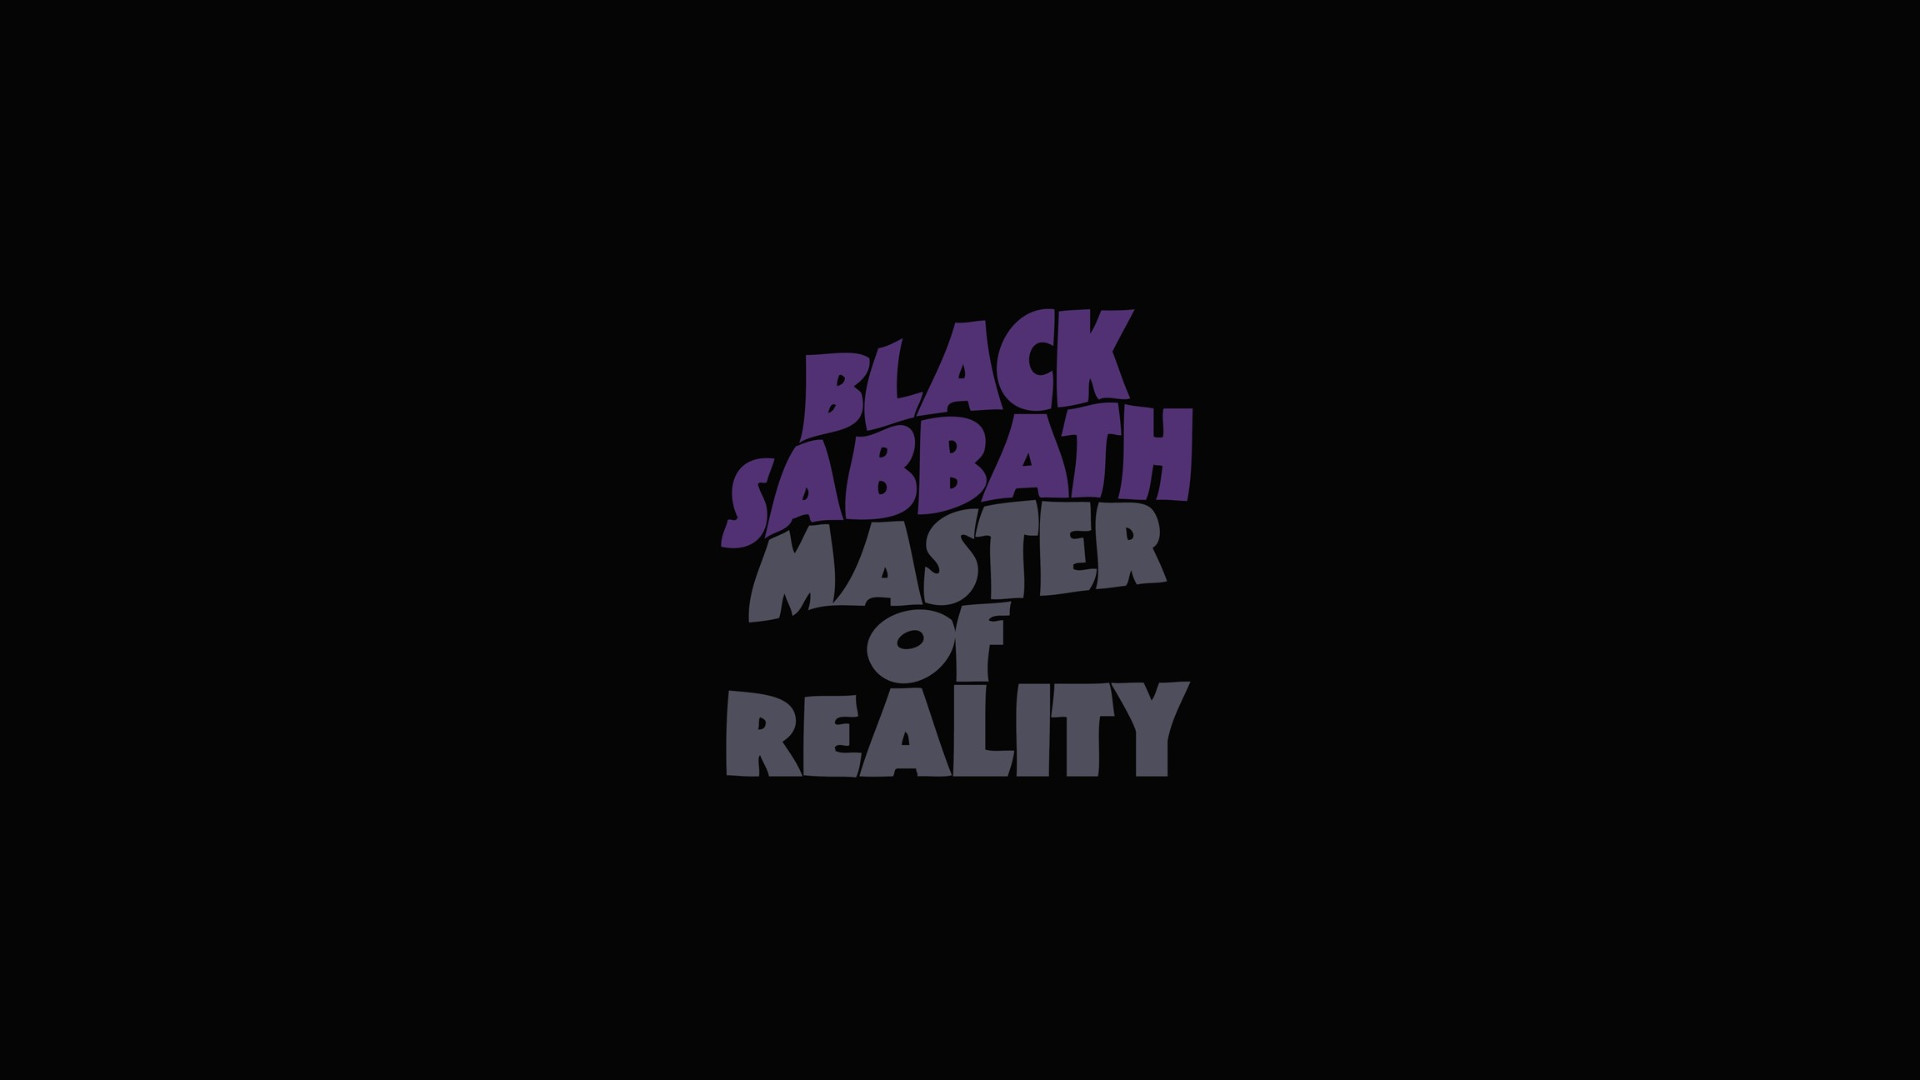 … Black Sabbath Vol 4 Wallpaper For Desktop Master Of Reality Wallpaper  For Computer Background …